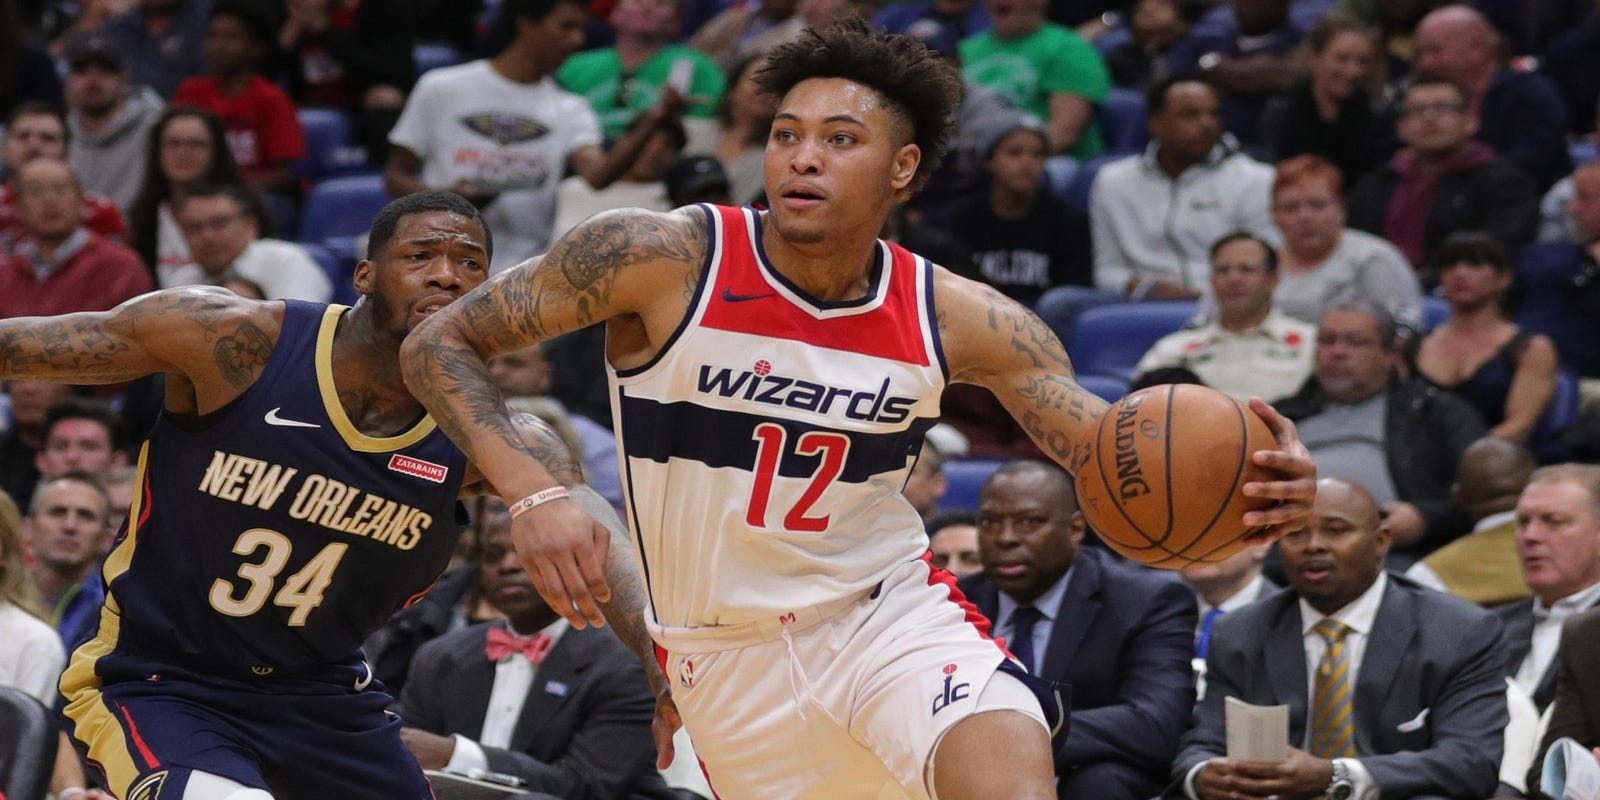 e5e7bbe900a7 Wizards snap Pelicans  win streak at 10 without Anthony Davis